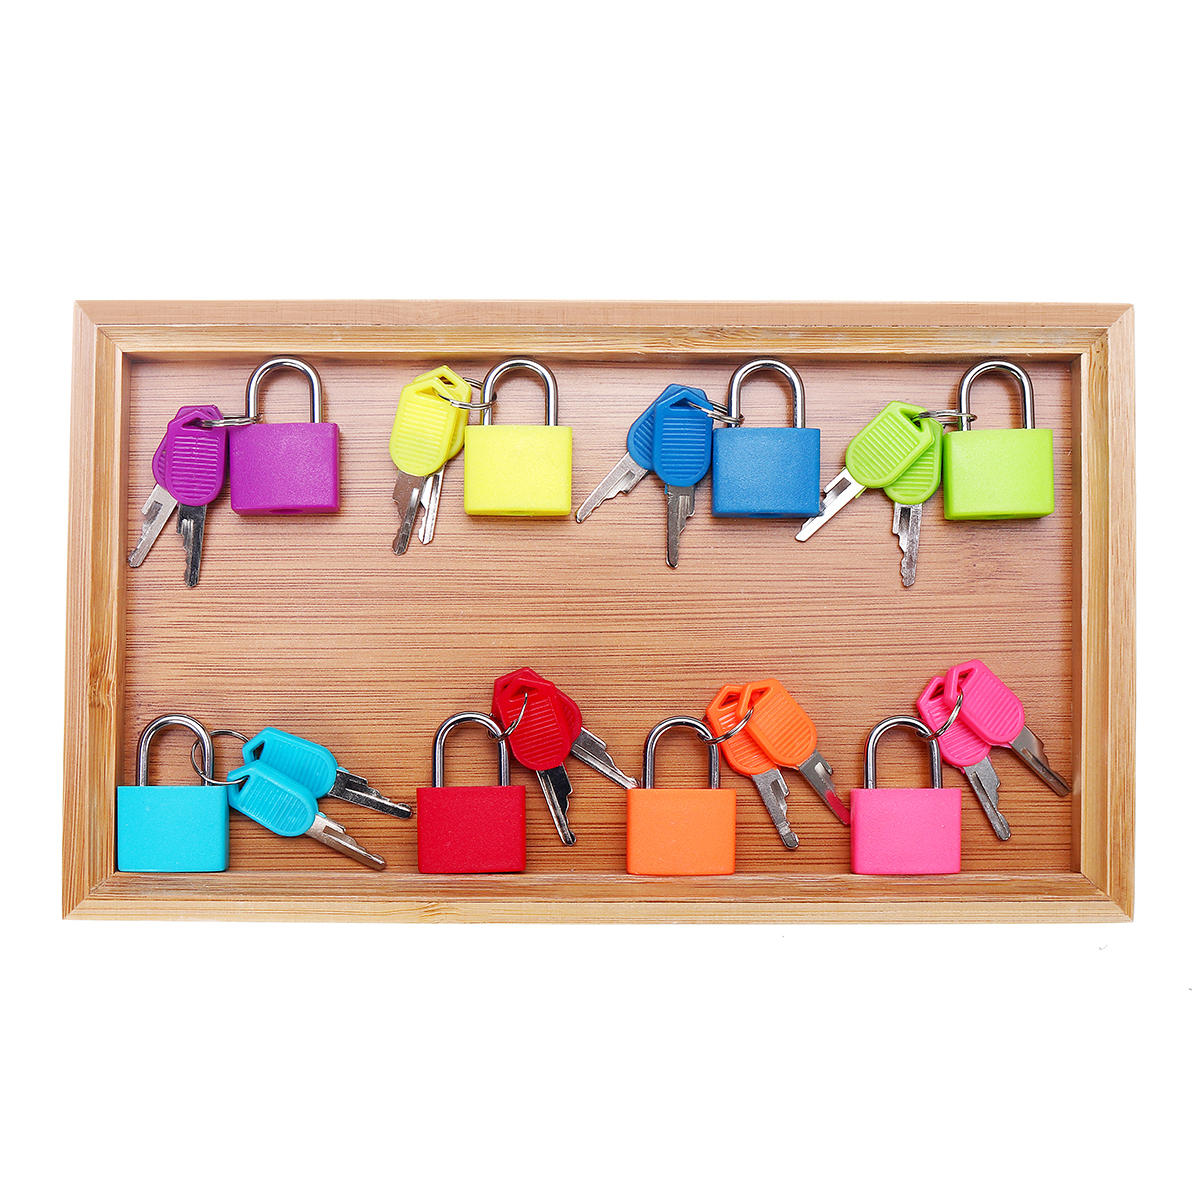 Montessori Locks and Keys with Bamboo Tray Practical Life Material Educational Toys for Children Preschool Learning Materials